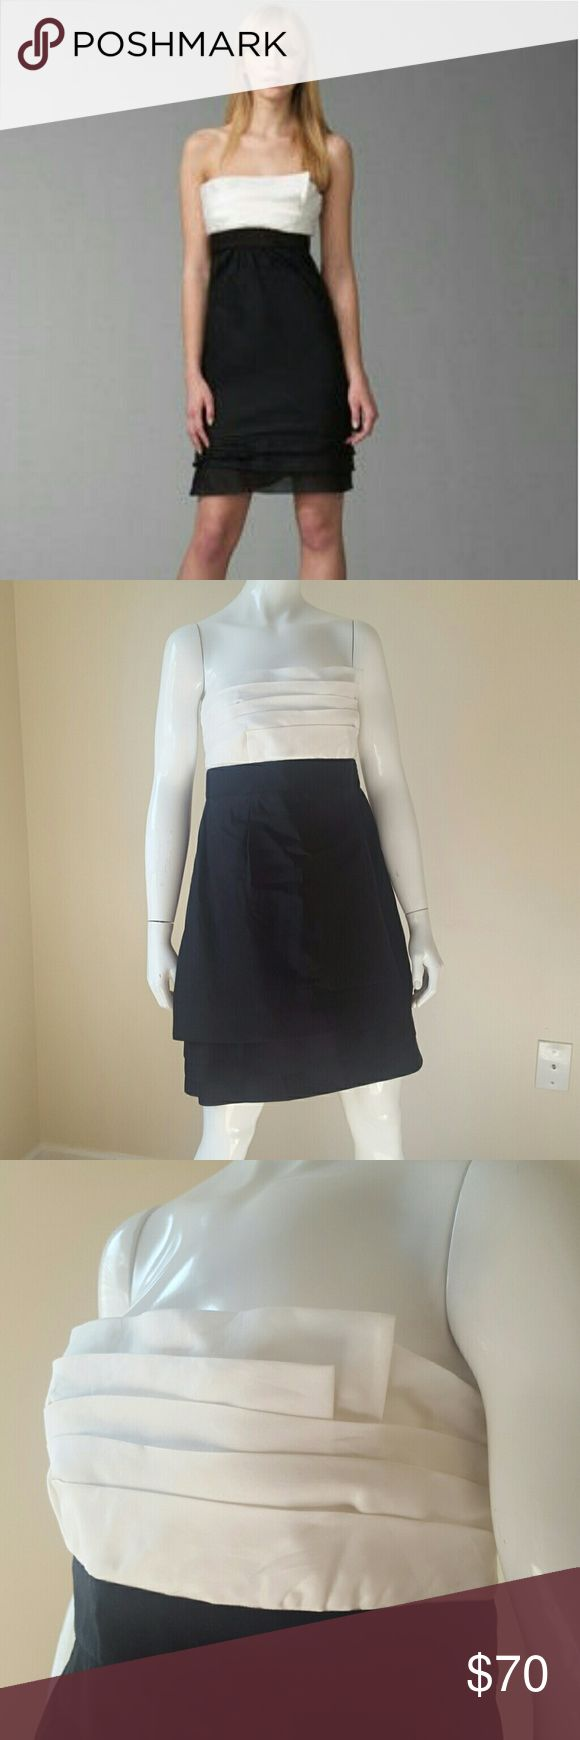 NWT! BCBGMaxAzria strapless organza dress New with tags! Beautiful layers across bust and at the bottom of the dress. Perfect for special occasions!  Size 12. BCBGMaxAzria Dresses Strapless